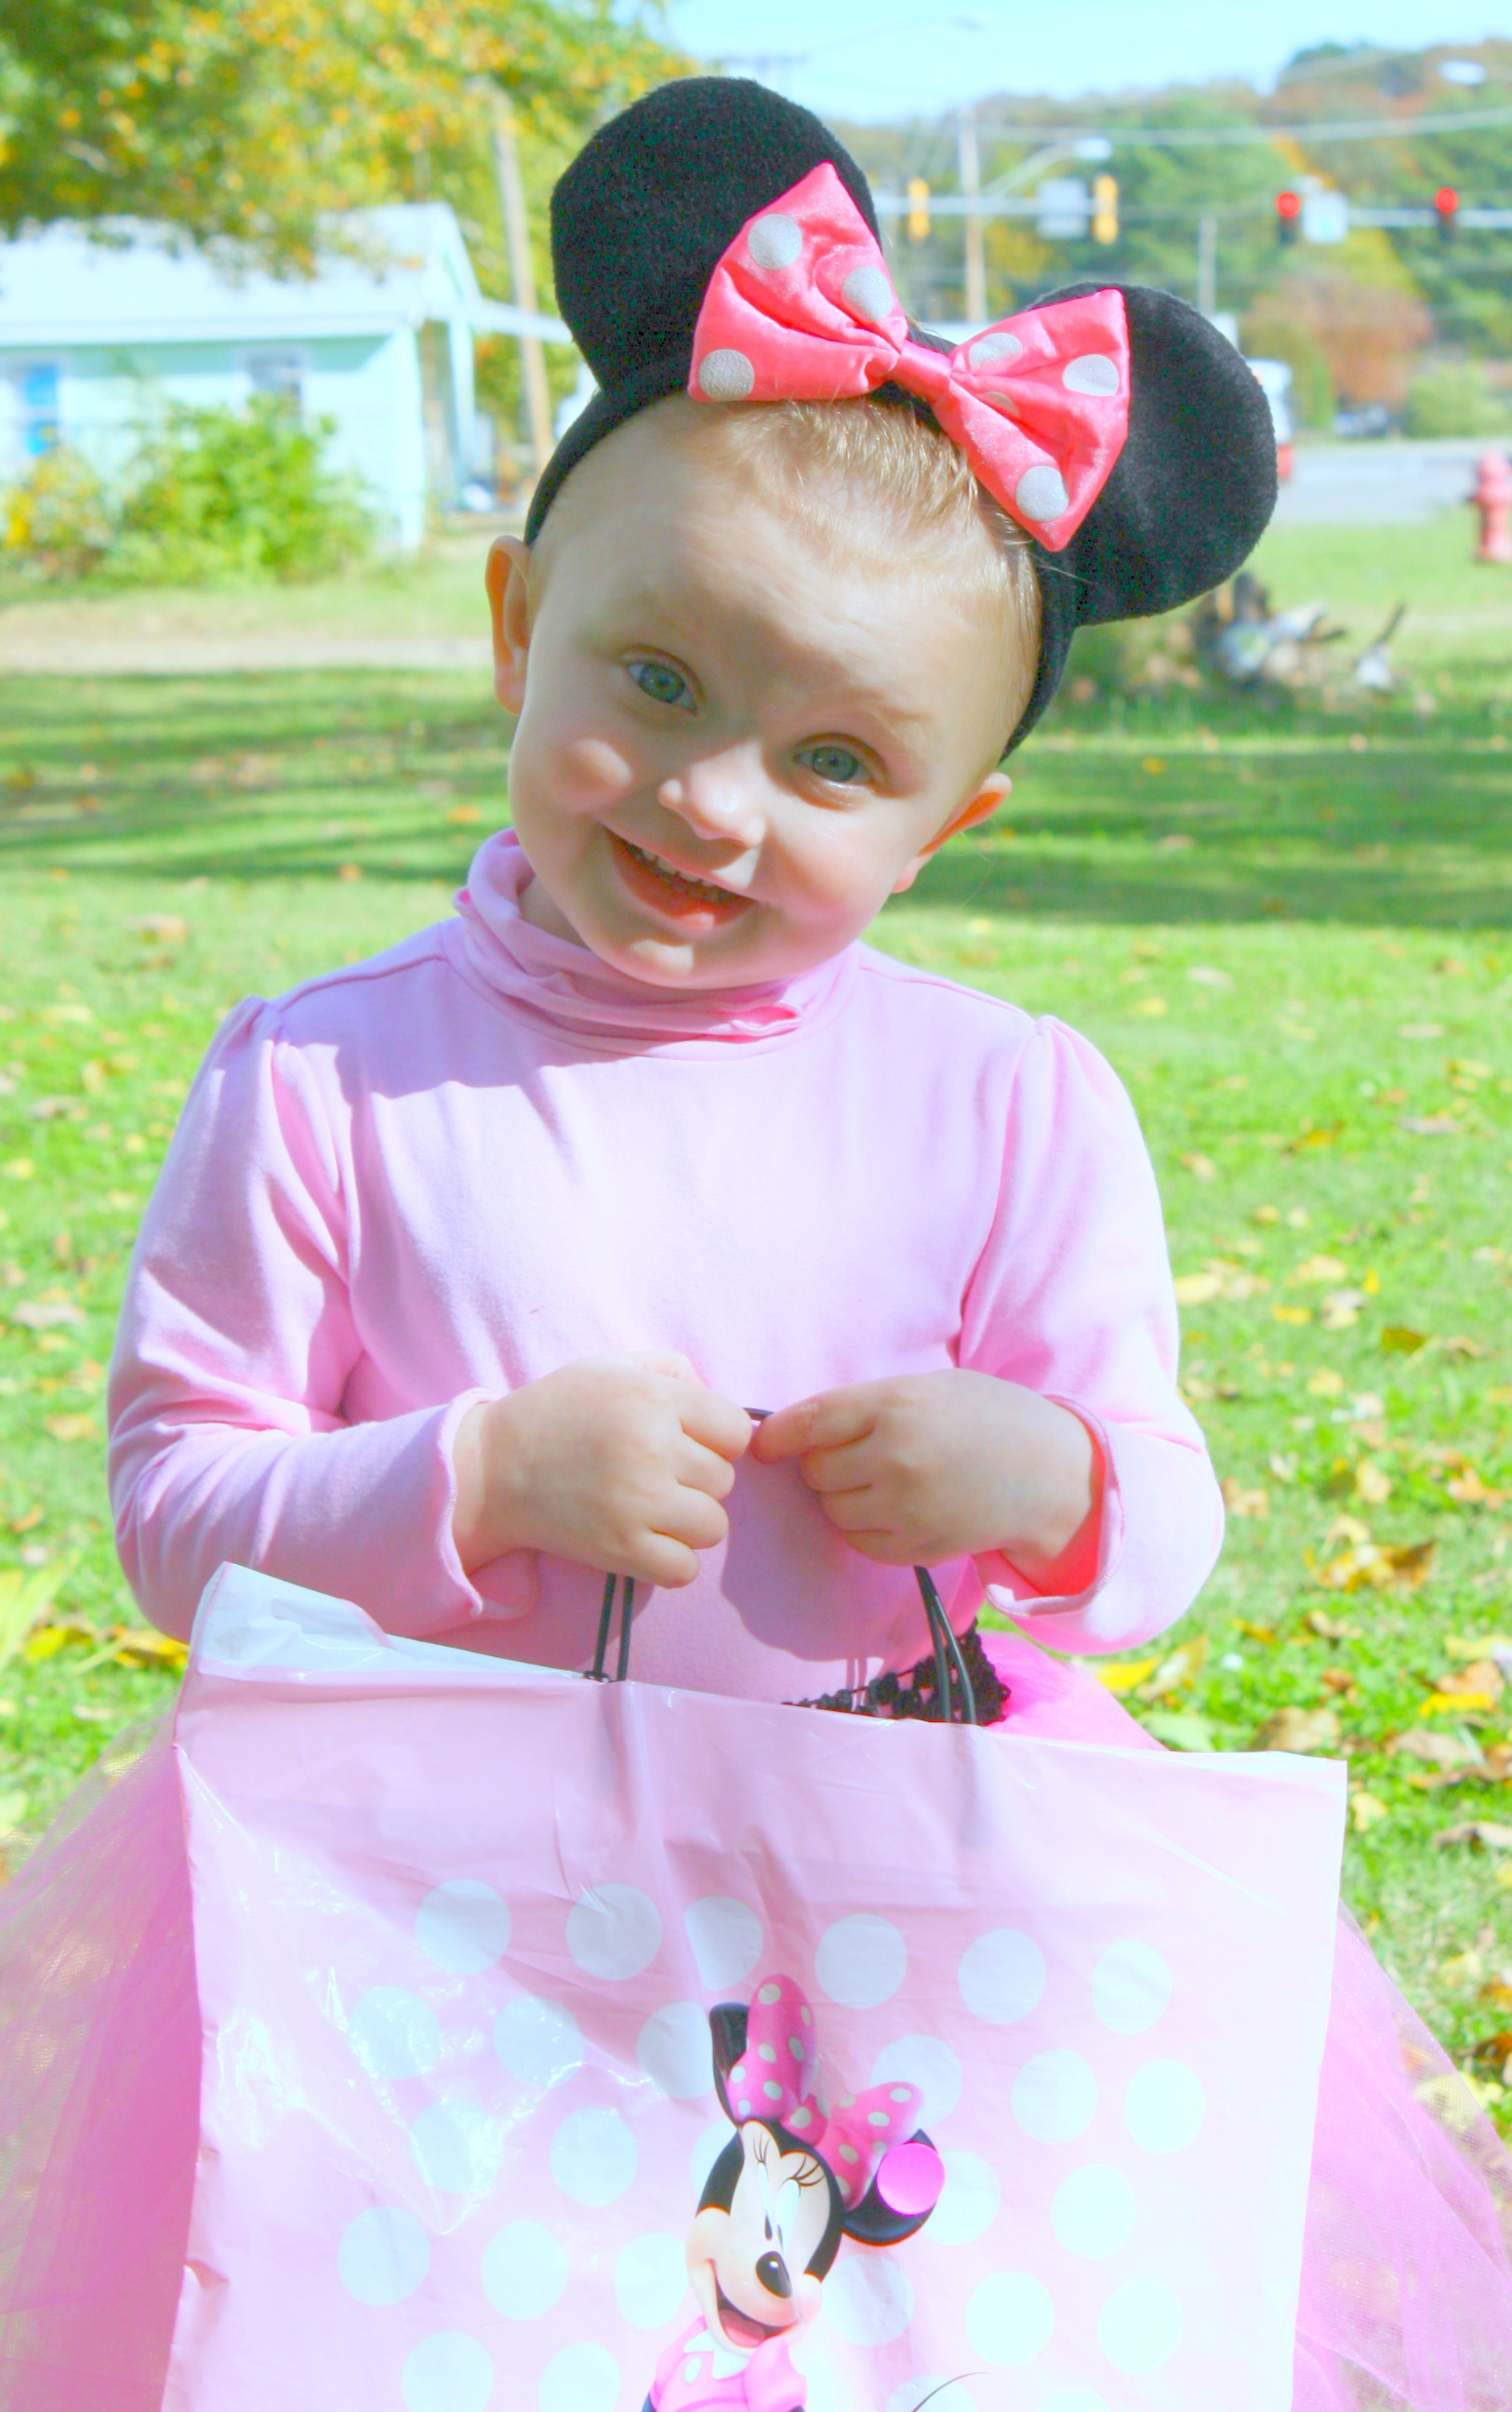 Kambree dressed as minnie mouse 2013